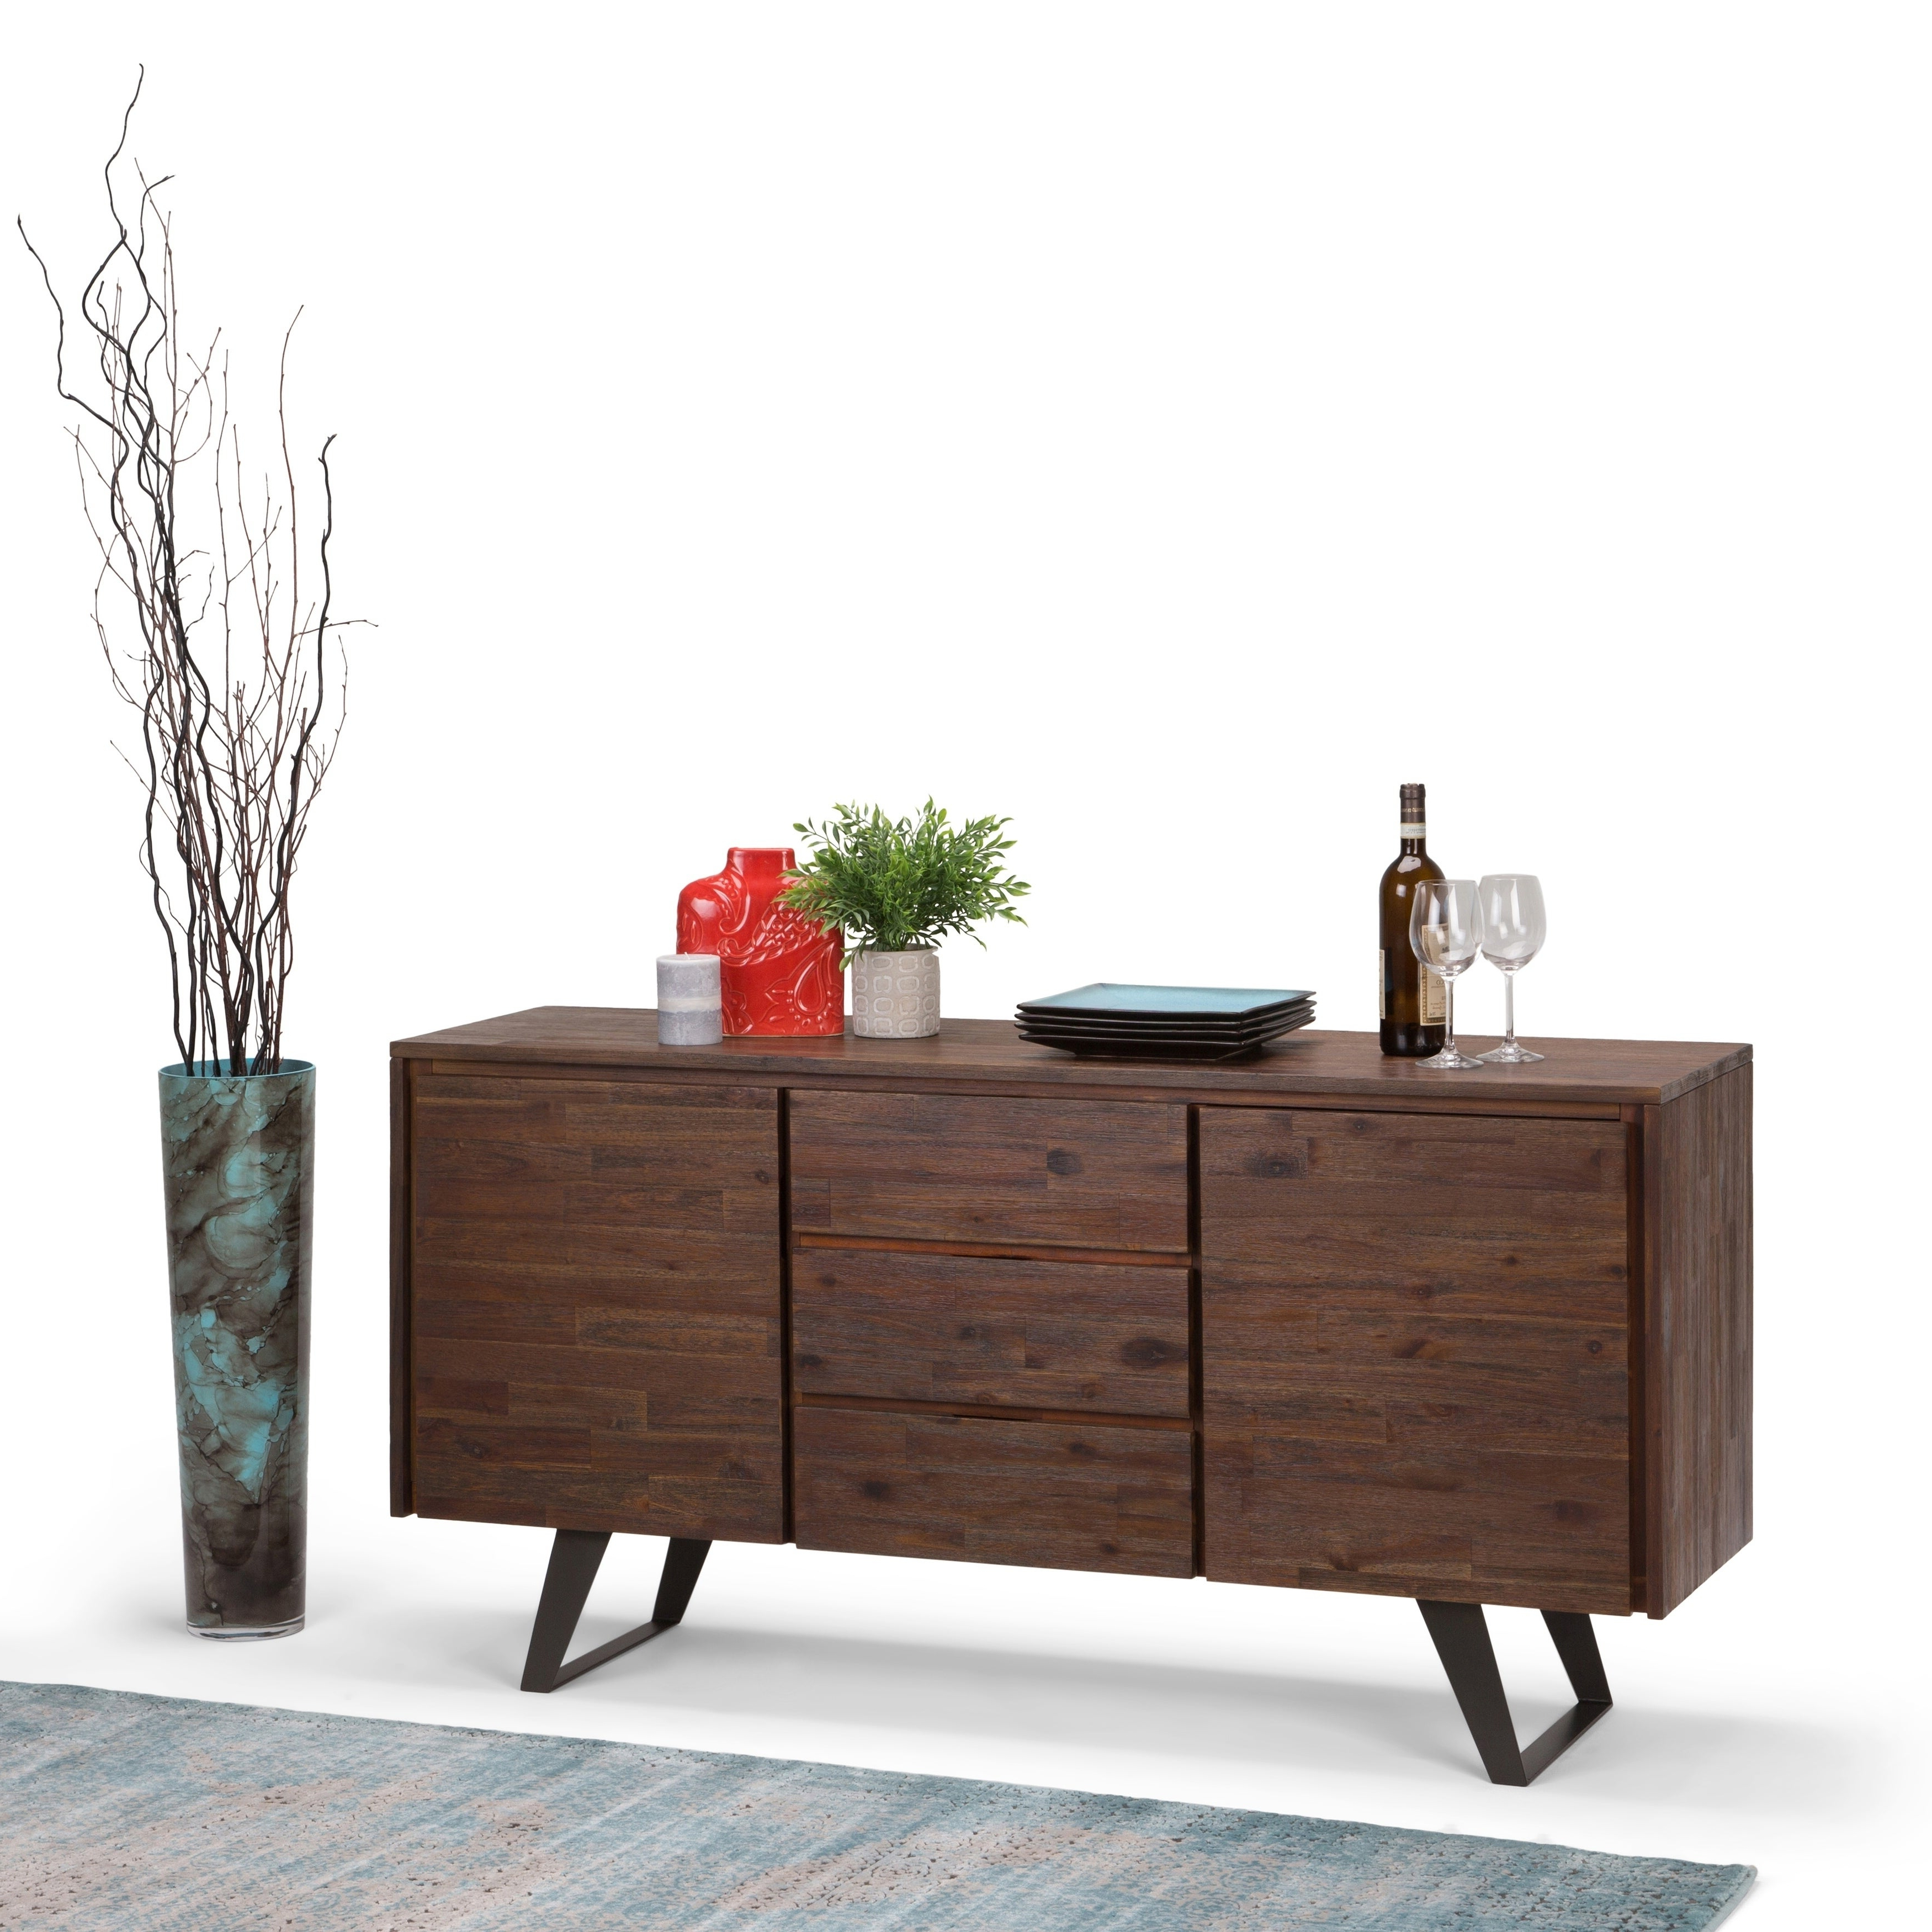 Buy Acacia Buffets, Sideboards & China Cabinets Online At Throughout Rustic Walnut Buffets (View 5 of 20)